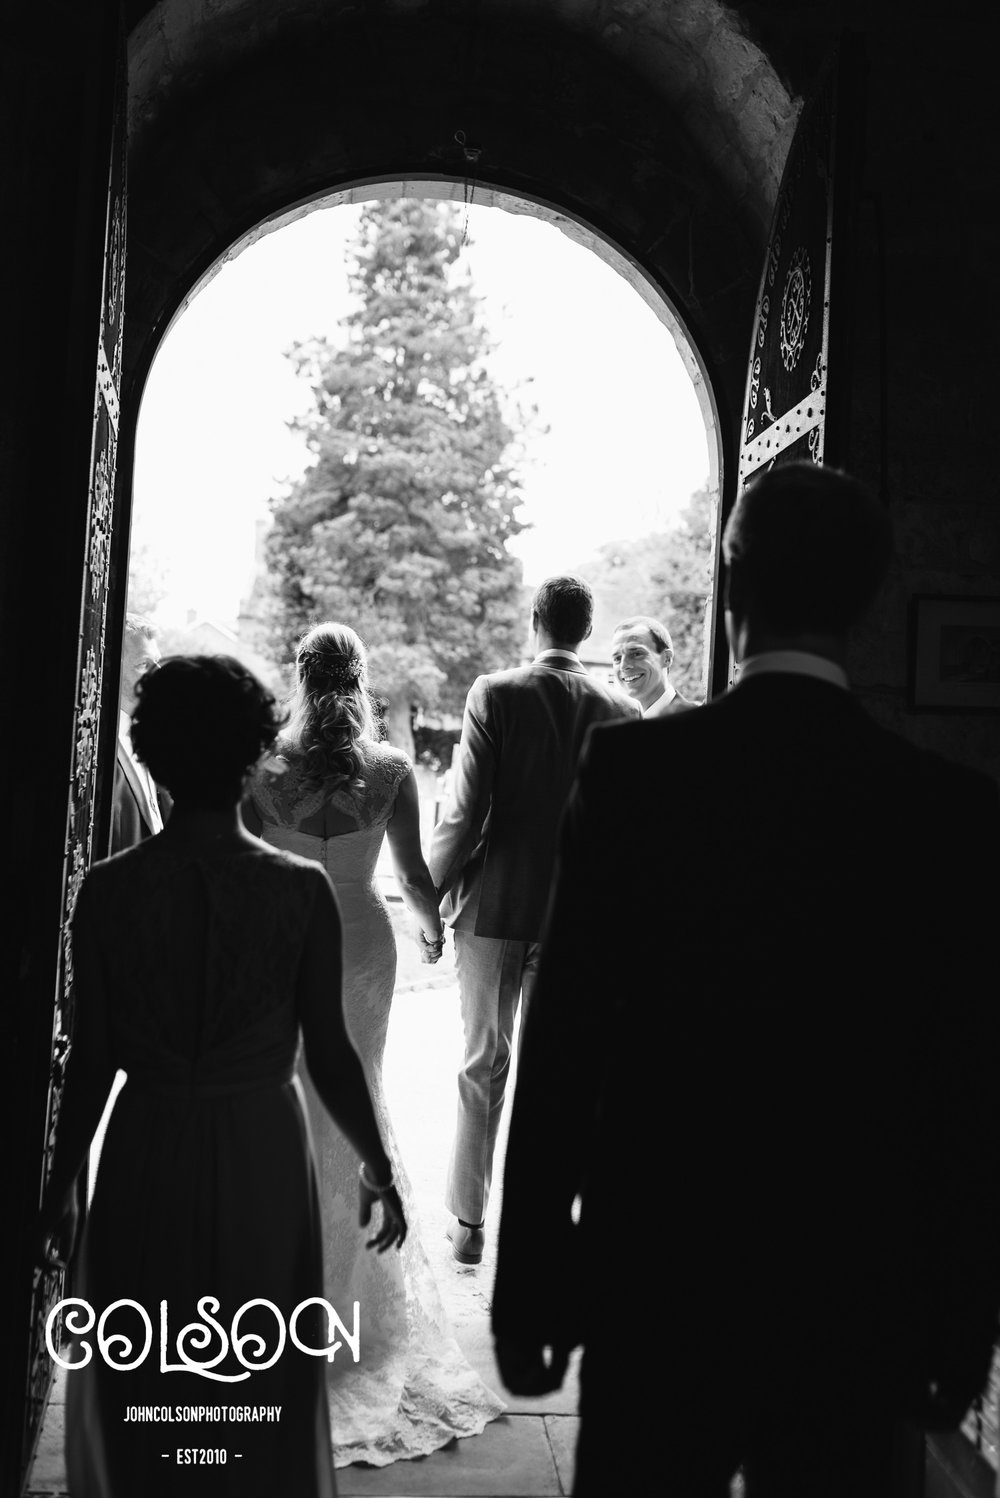 I do like a nice 'leaving the church' silhouette shot. This may be one of my favourites...